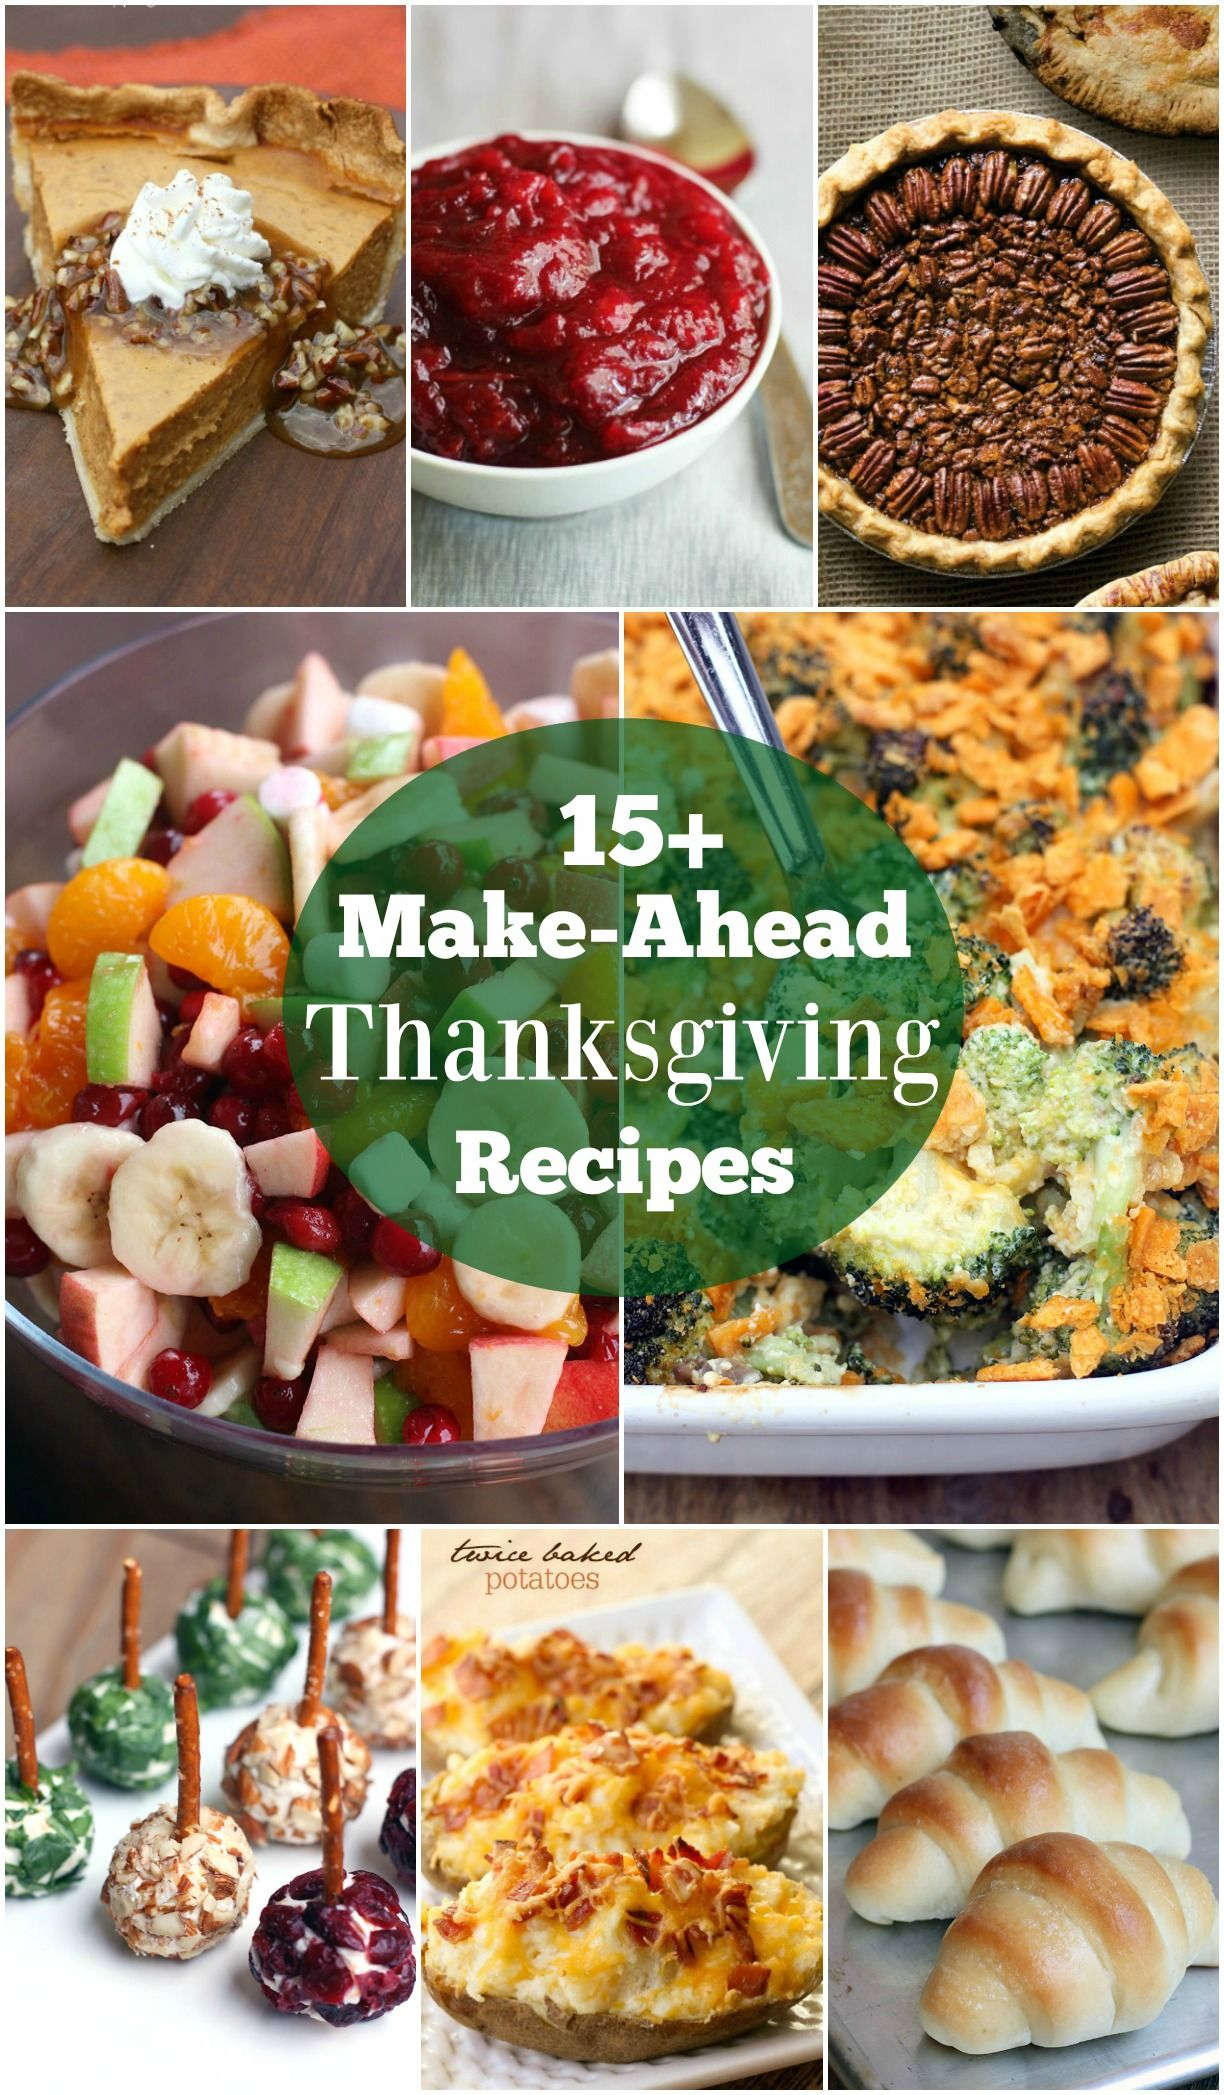 Classic Thanksgiving Menu With Grocery List And Make